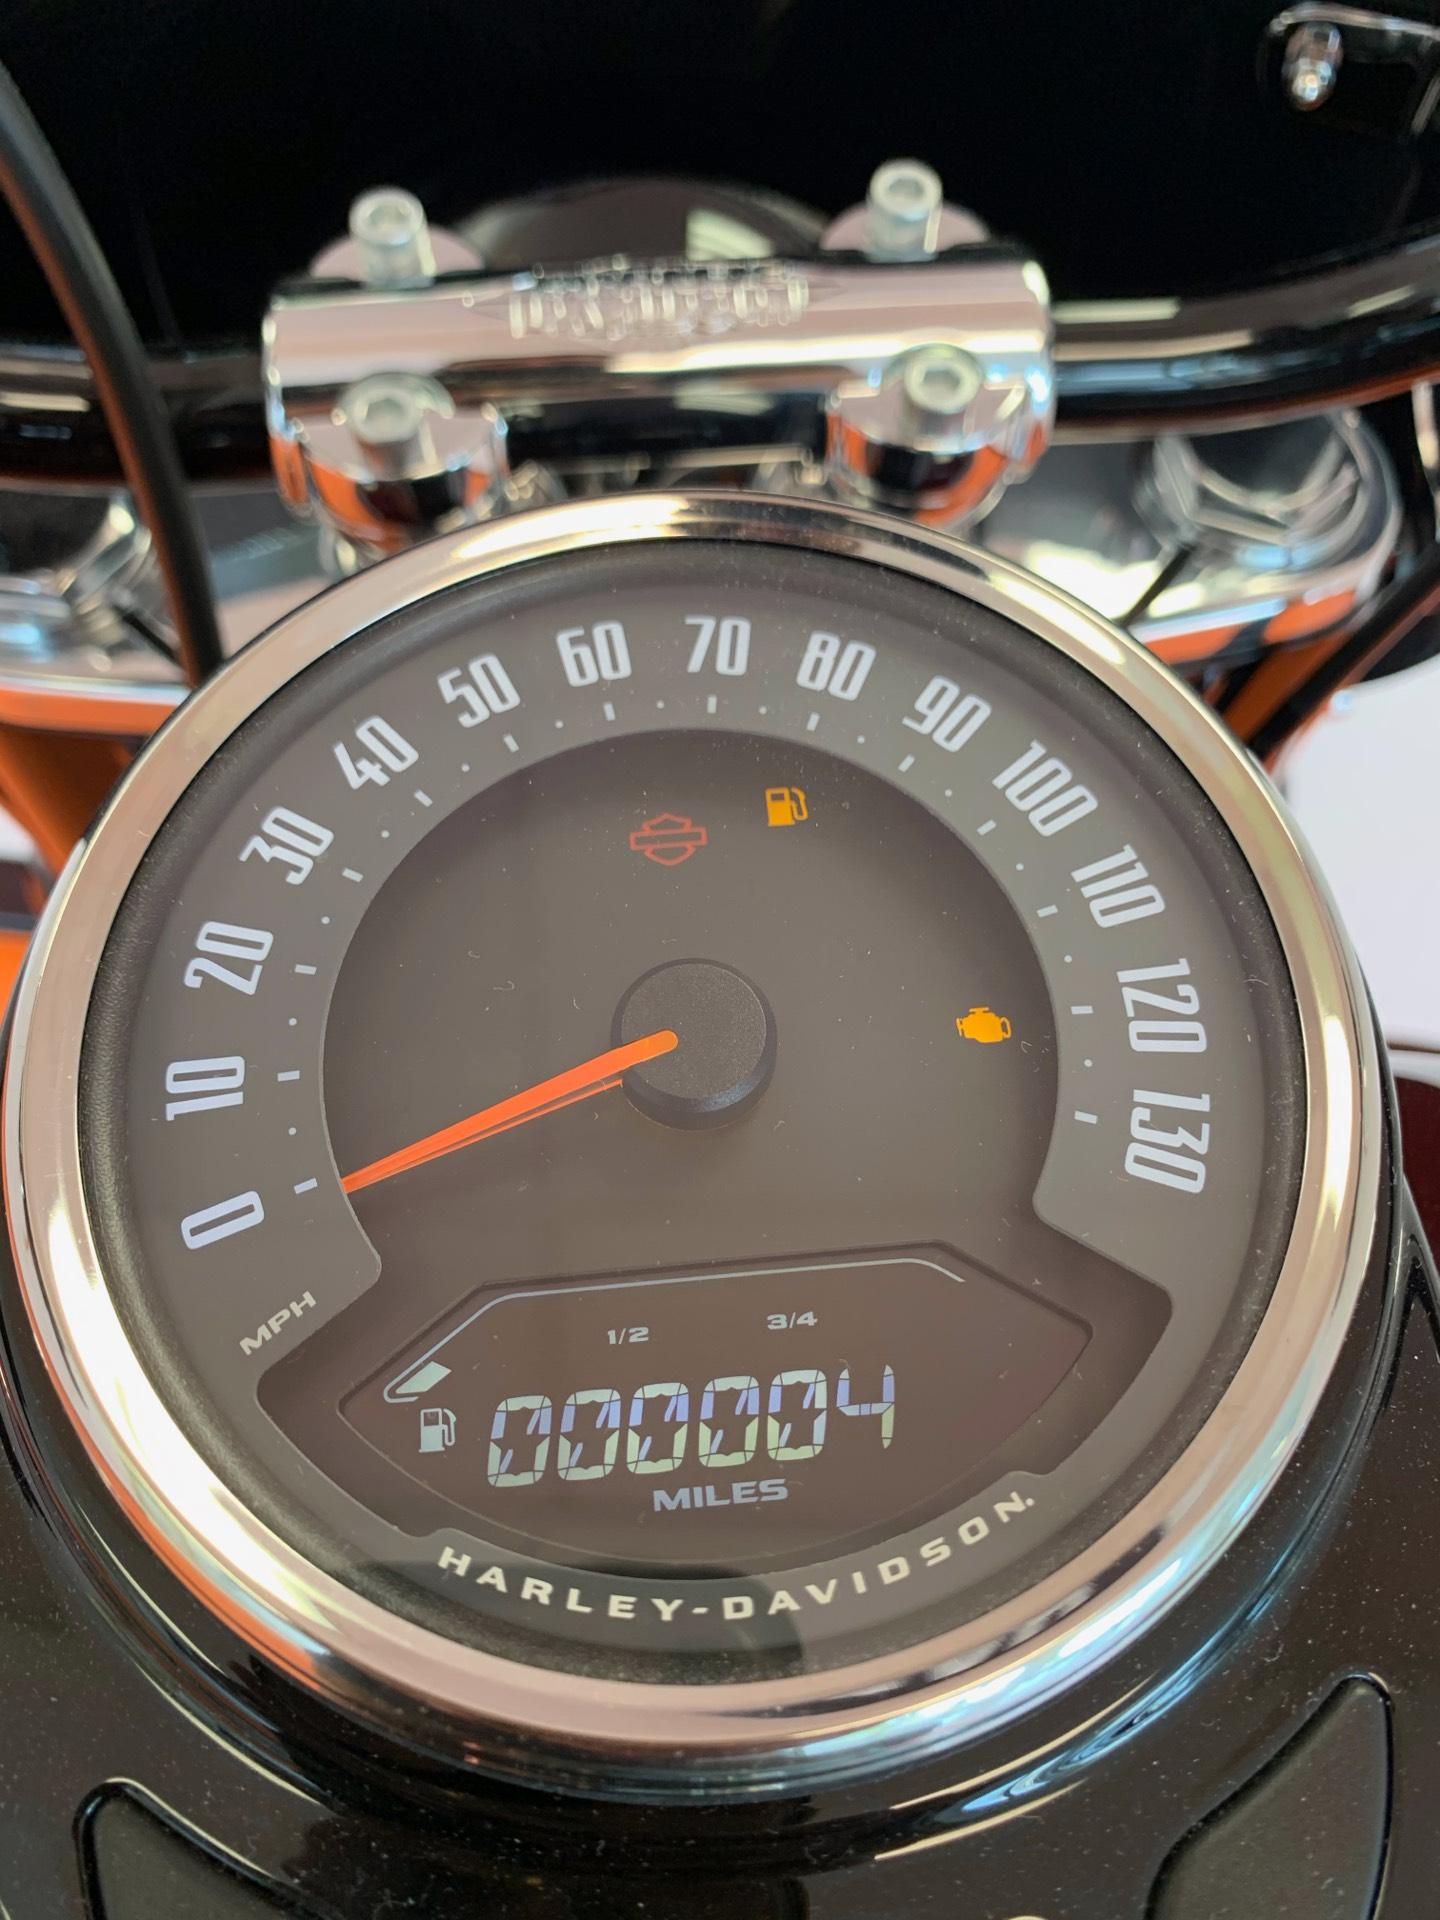 2020 Harley-Davidson Heritage Classic 114 in Dumfries, Virginia - Photo 10